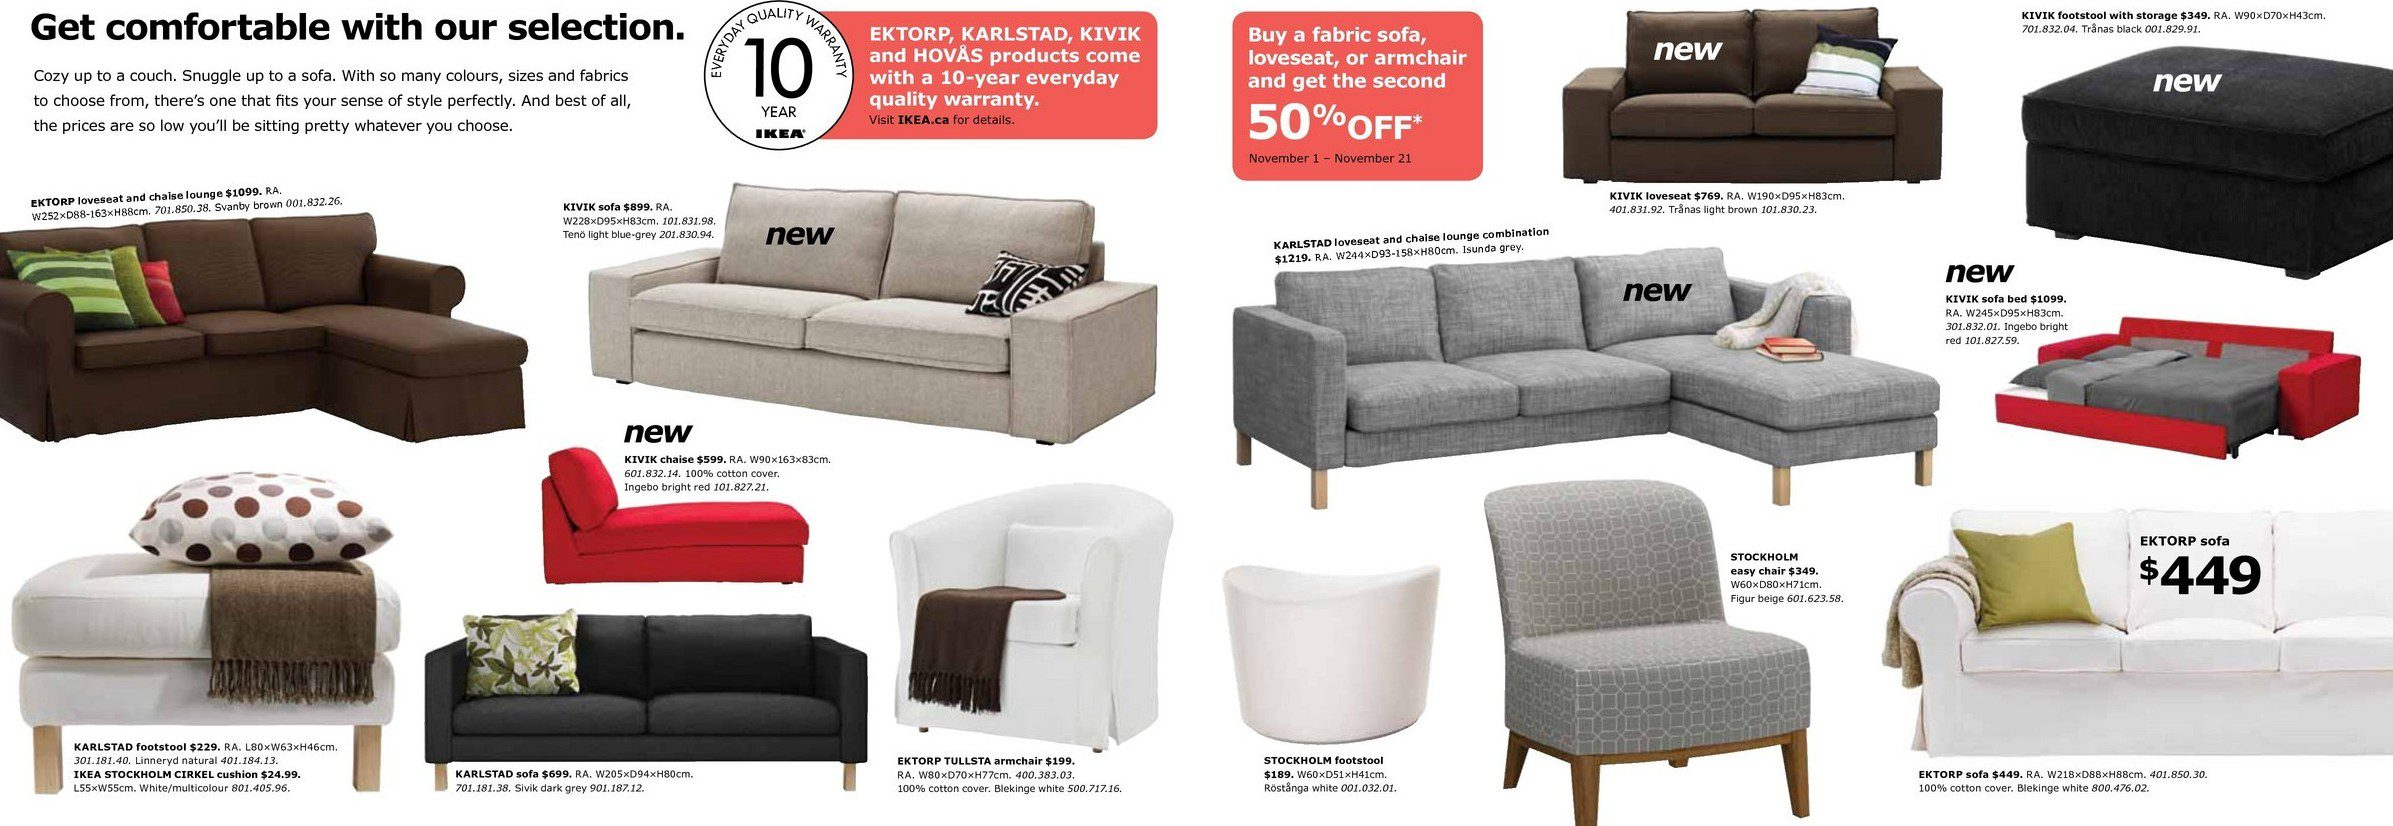 CANADA! 50% off your 2nd fabric sofa purchase at IKEA - Comfort Works Blog u0026 Design Inspirations